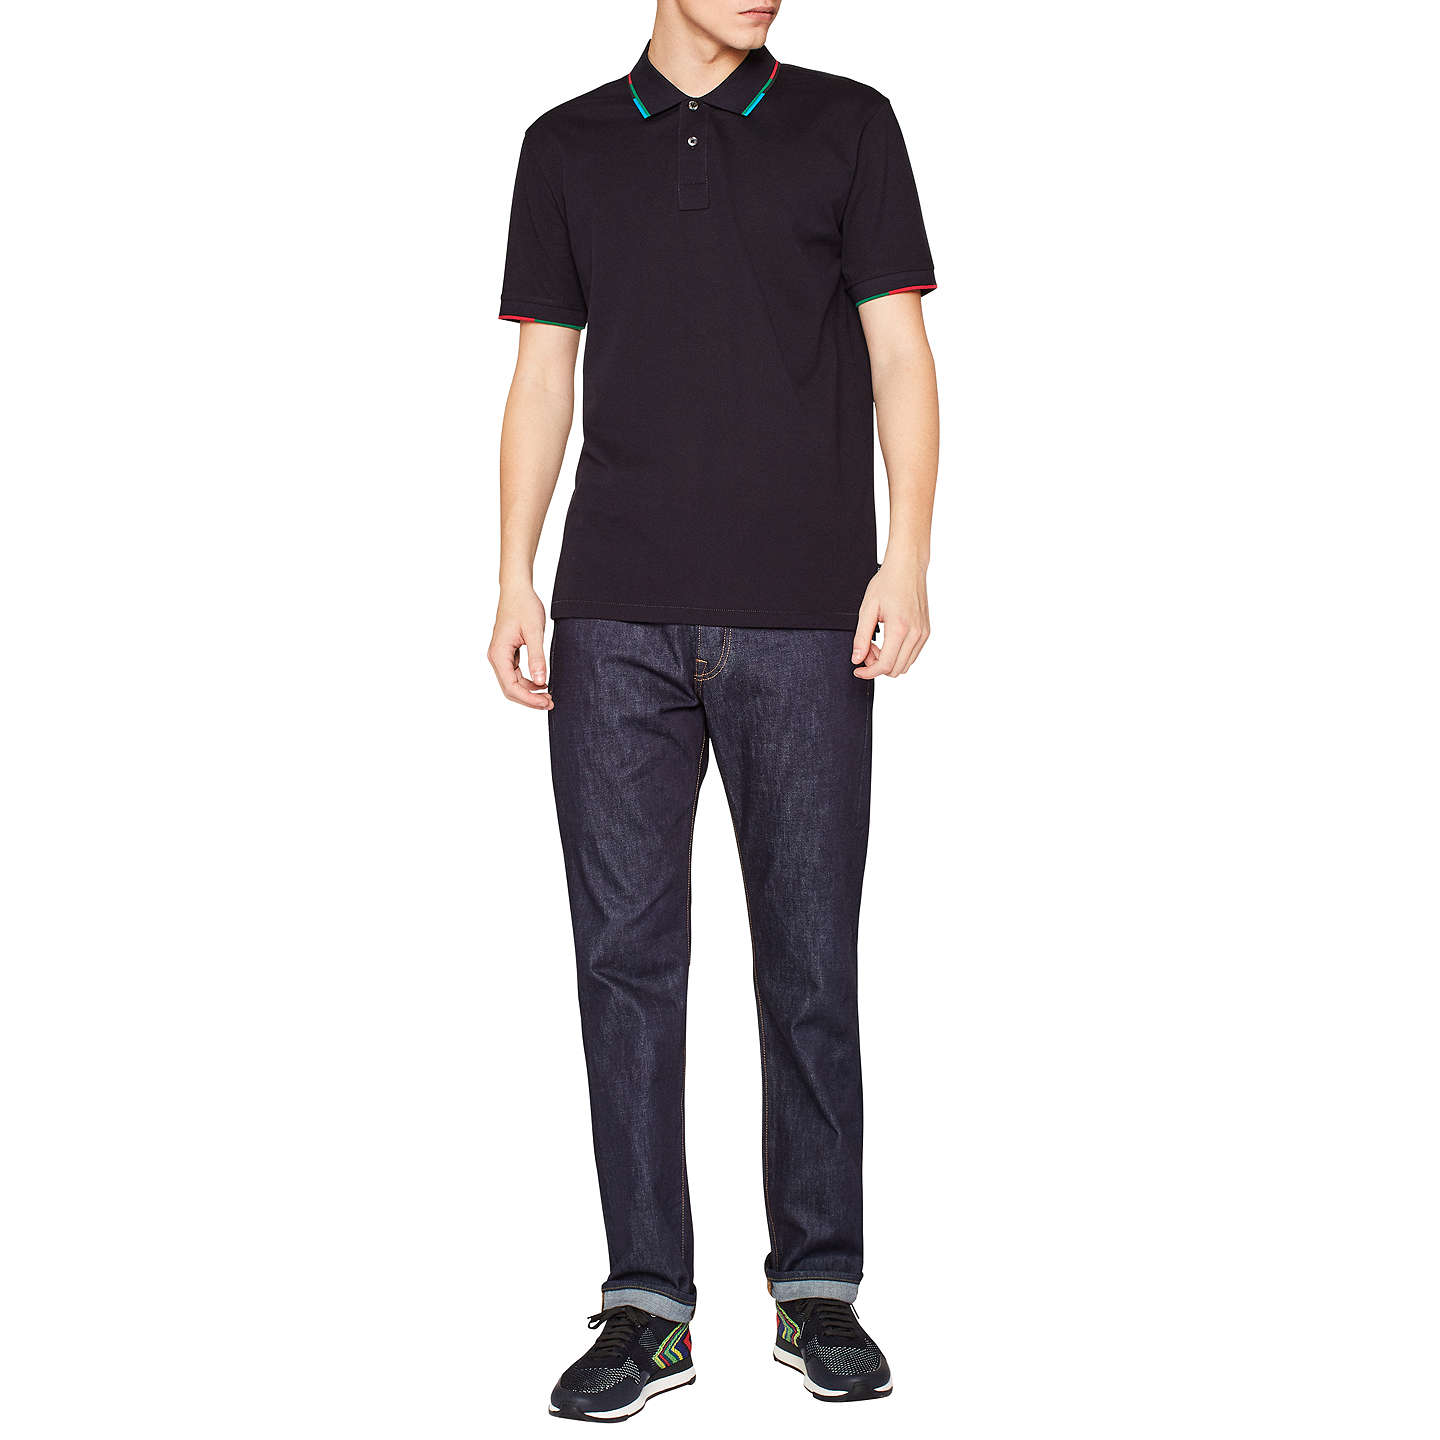 BuyPS Paul Smith Super Soft Cross Hatch Straight Jeans, Dark Navy Rinse, 30R Online at johnlewis.com